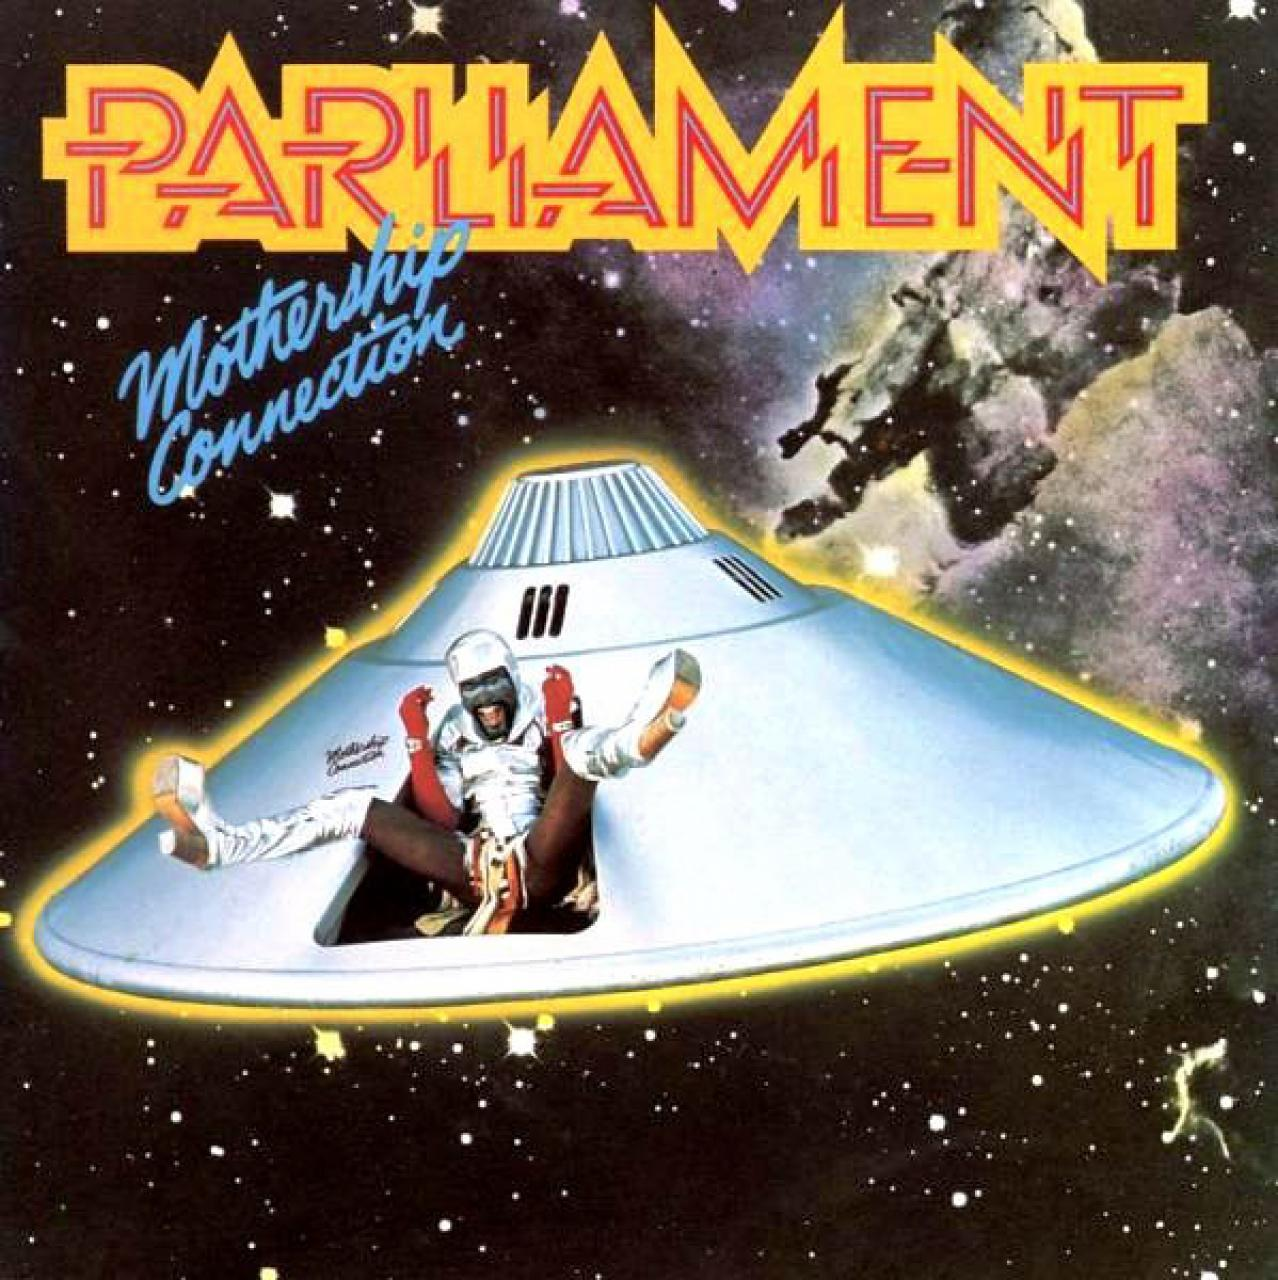 Parliament - Mothership Connection